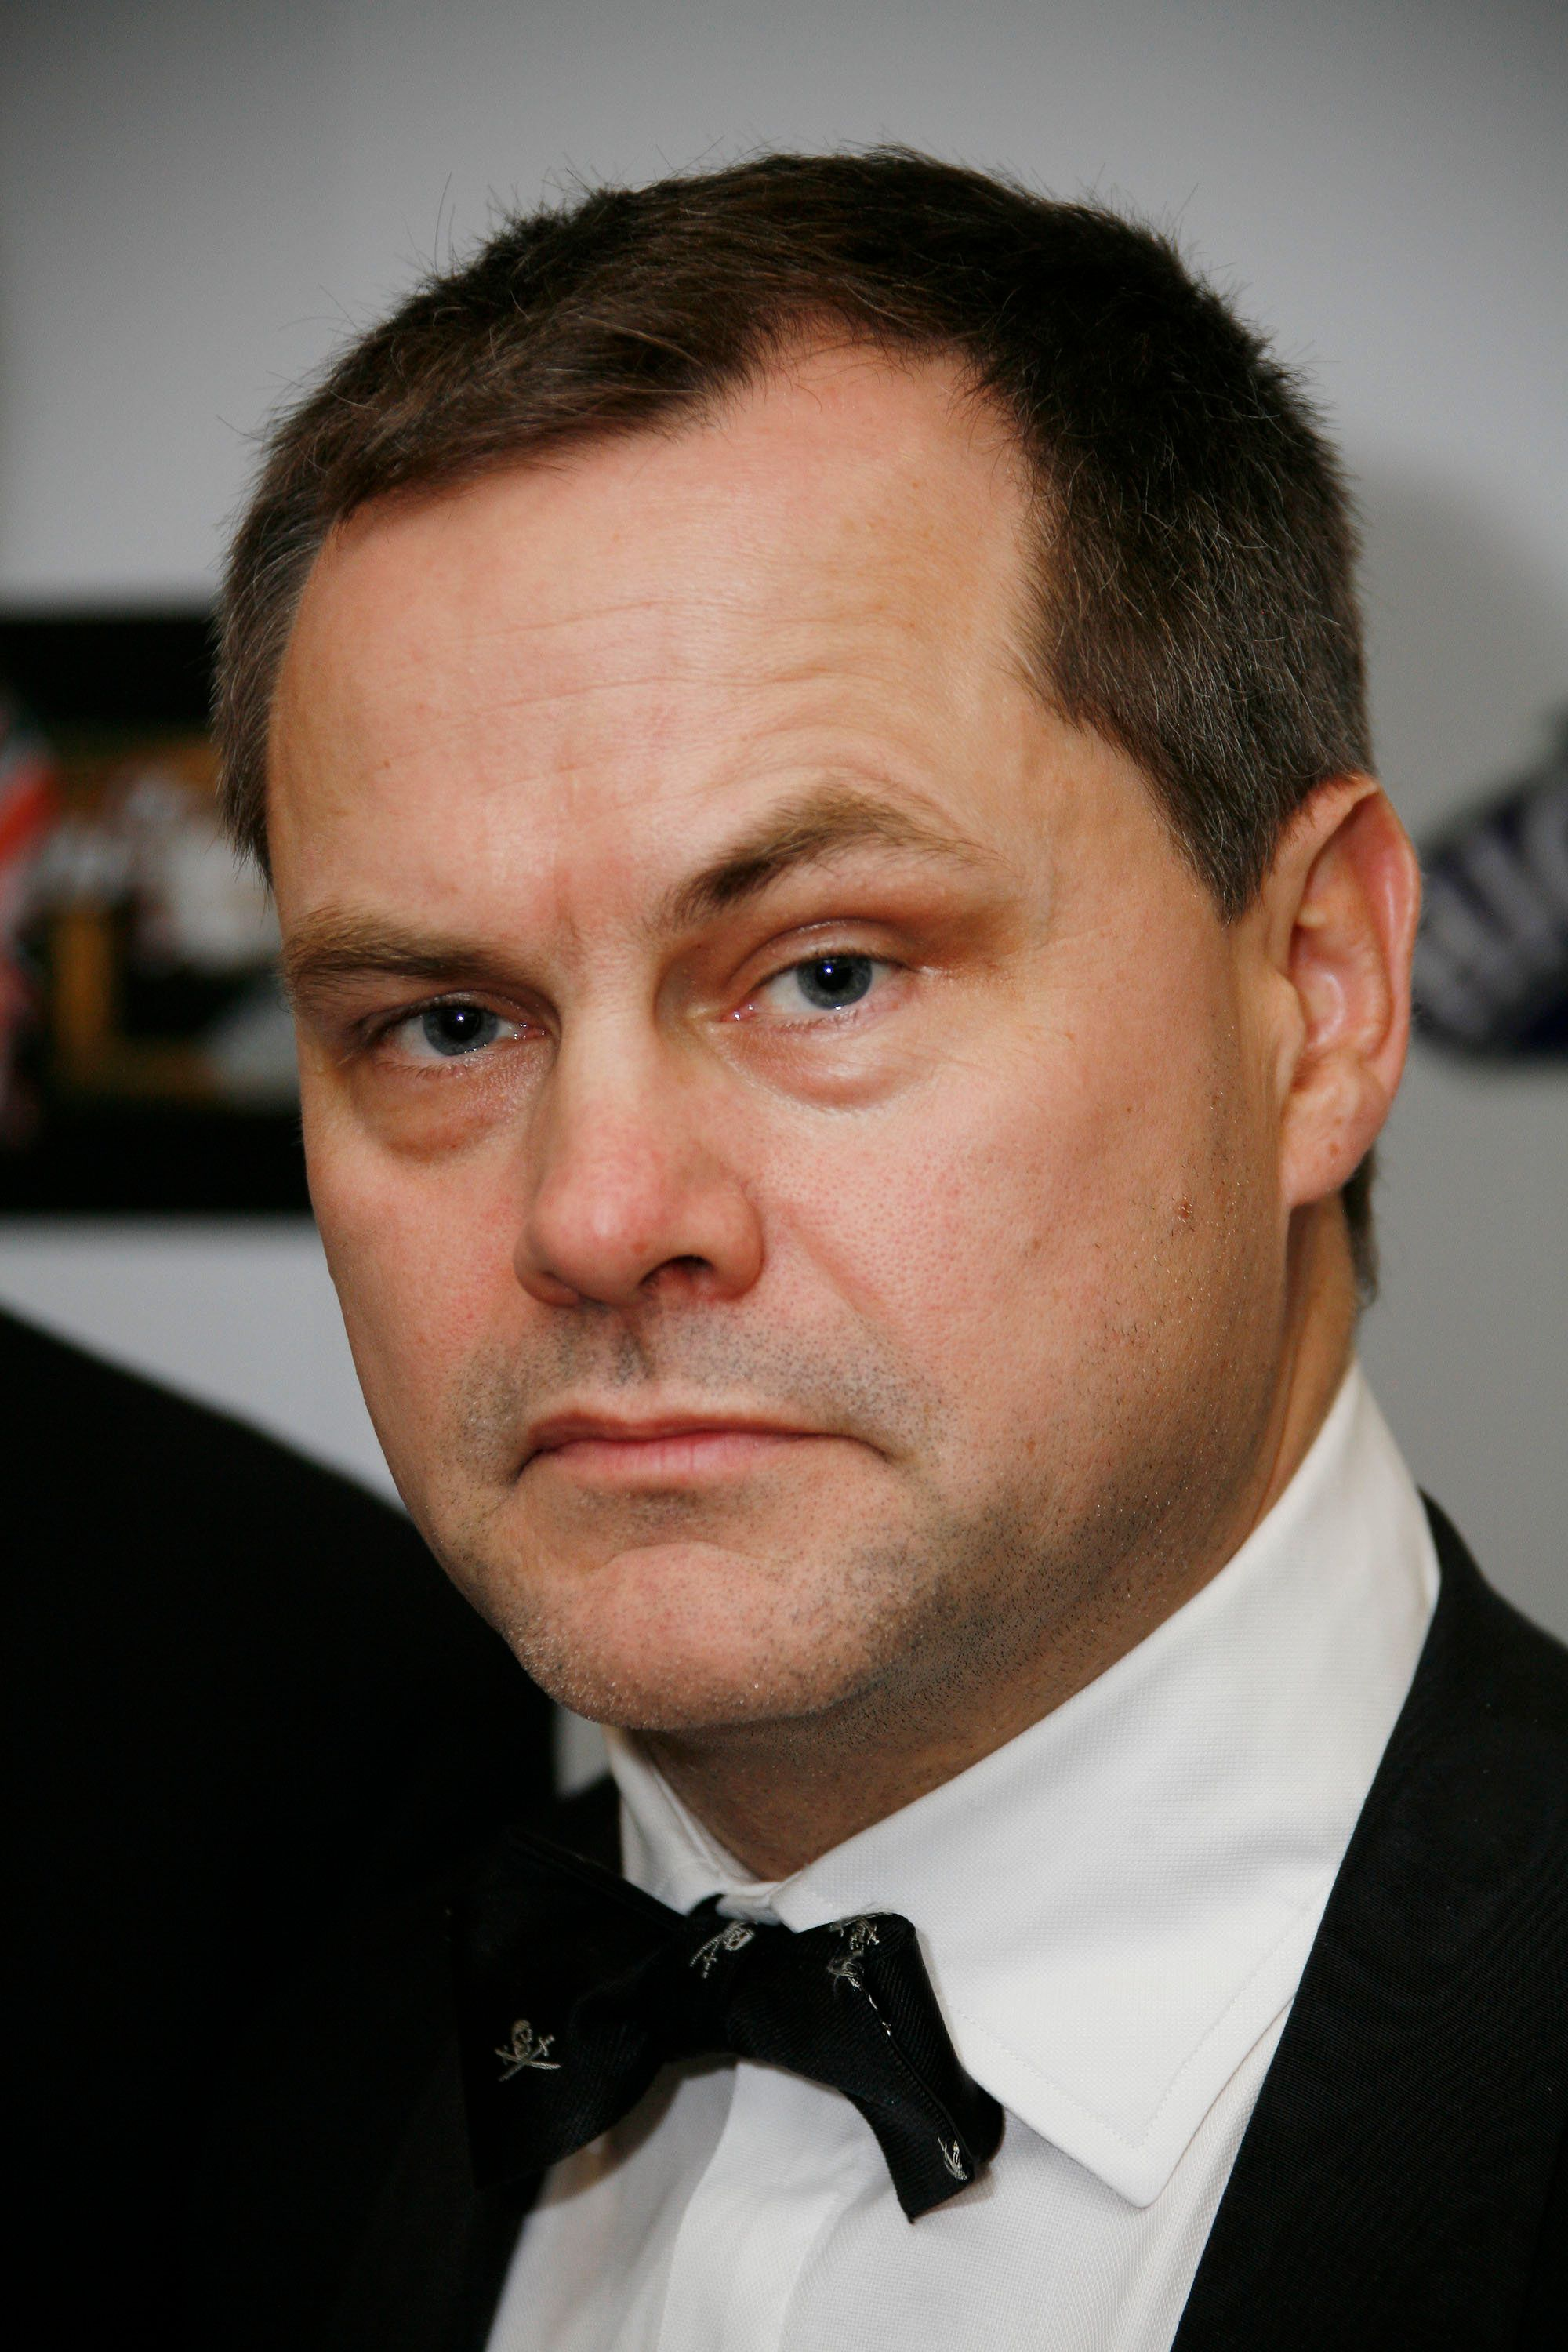 Jack Dee has only been presenting the show for one